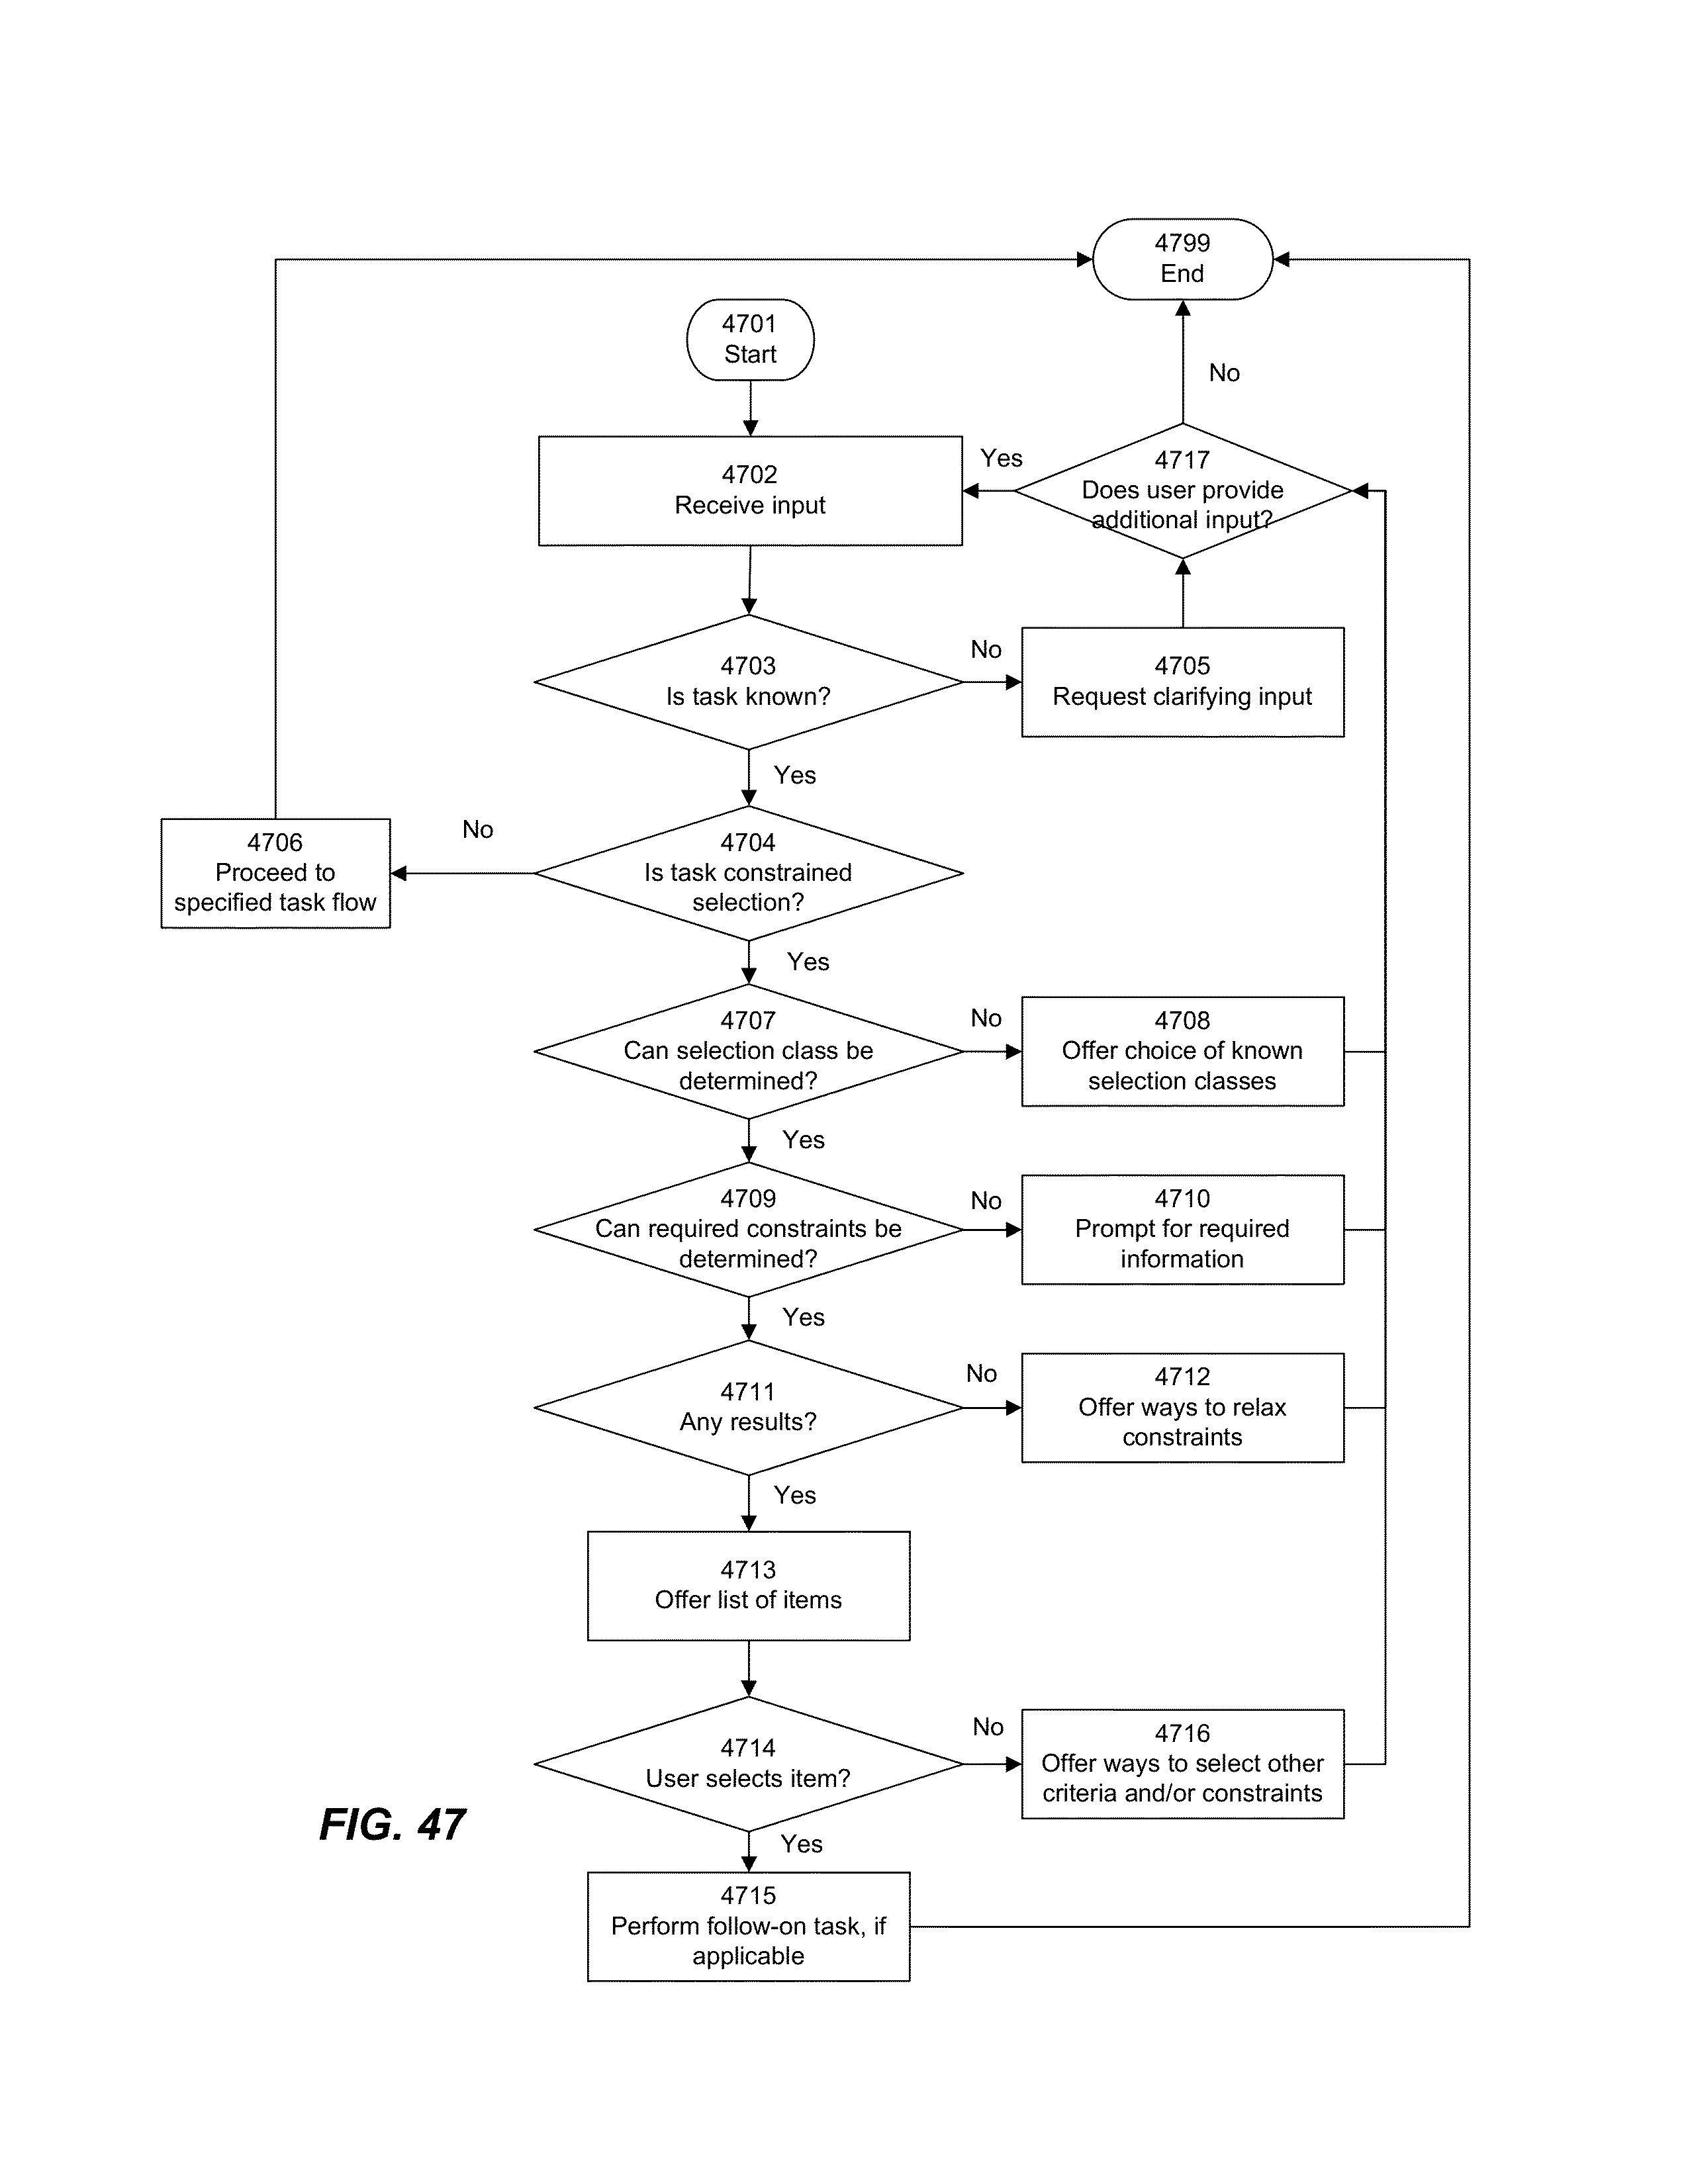 Us8670979b2 active input elicitation by intelligent automated assistant patents